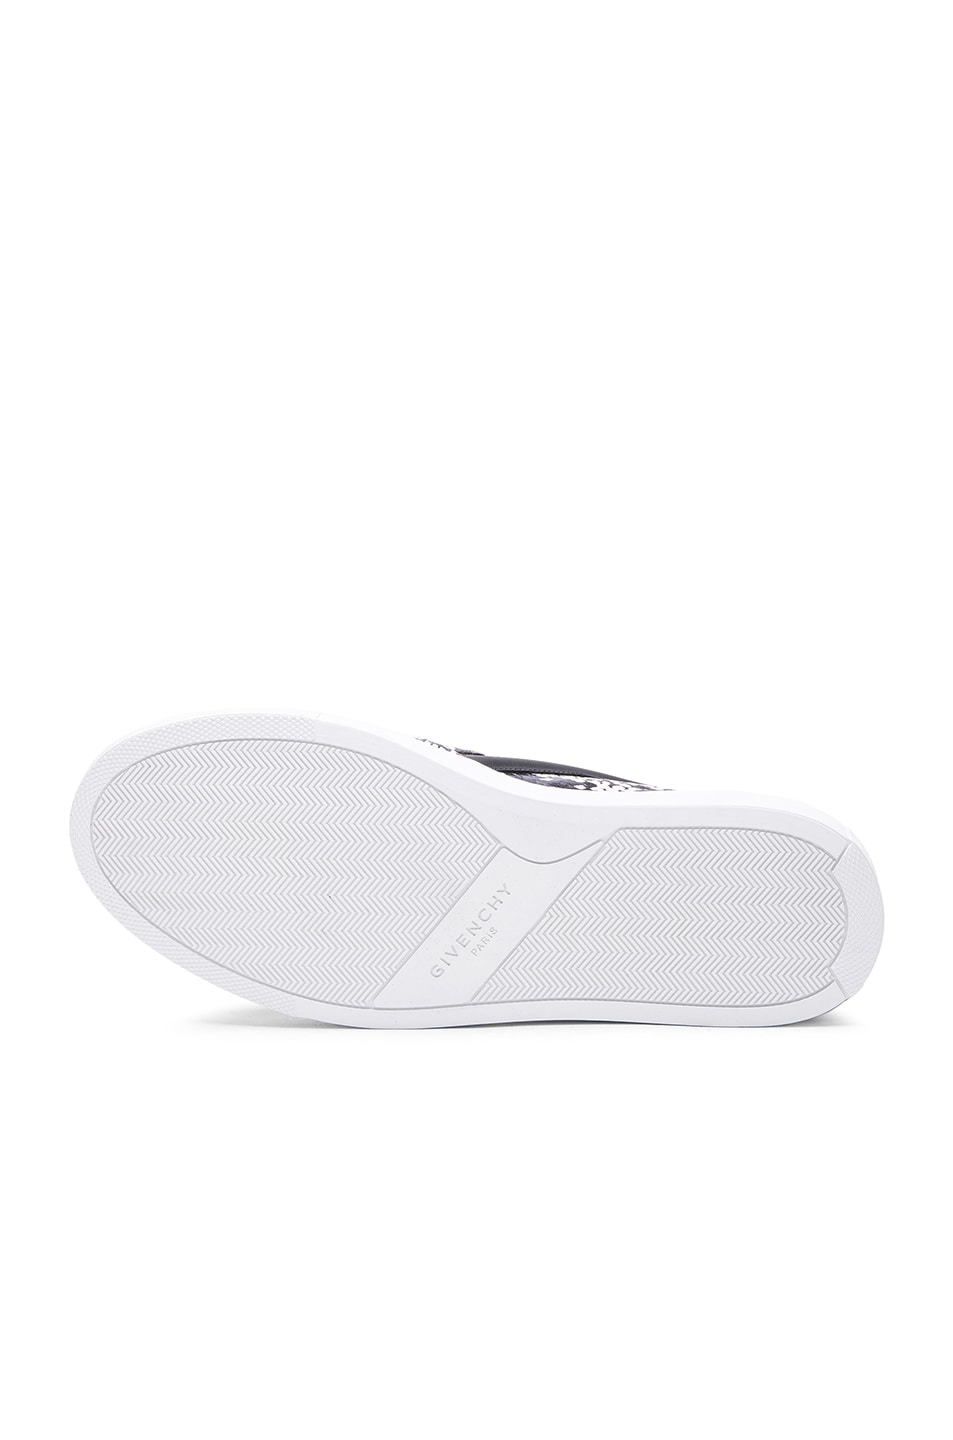 Image 6 of Givenchy Low Skate Elaphe Sneakers in Black & White